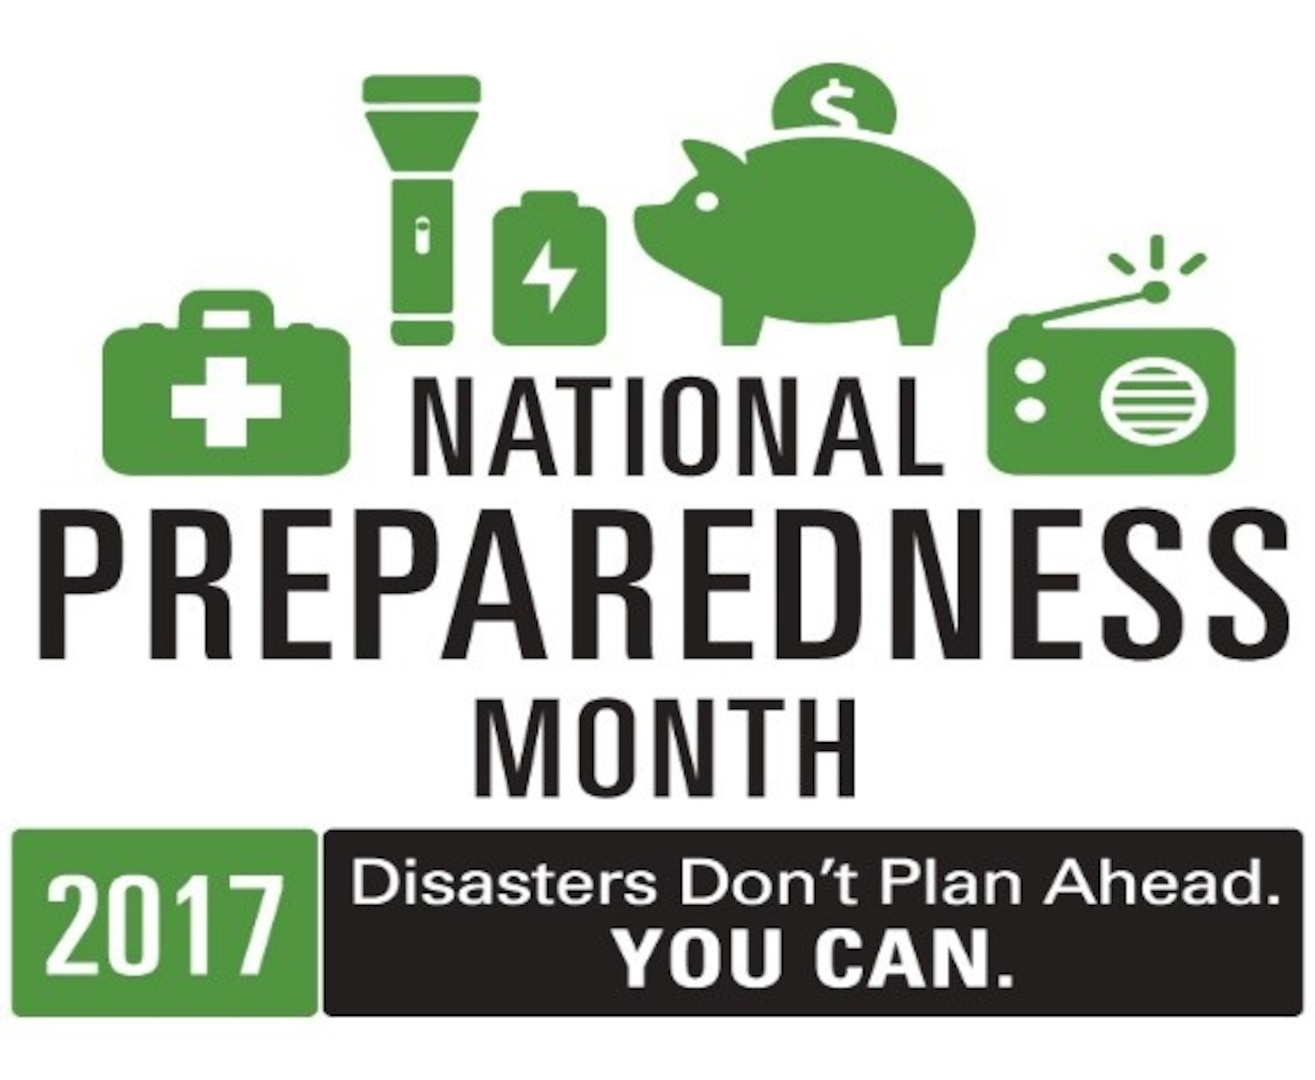 September is National Preparedness Month, sponsored by the Federal Emergency Management Agency. During this month, Defense Contract Management Agency personnel are encouraged to take steps to prepare for emergencies in their homes, businesses, schools and communities. (Graphic courtesy of the Department of Homeland Security)